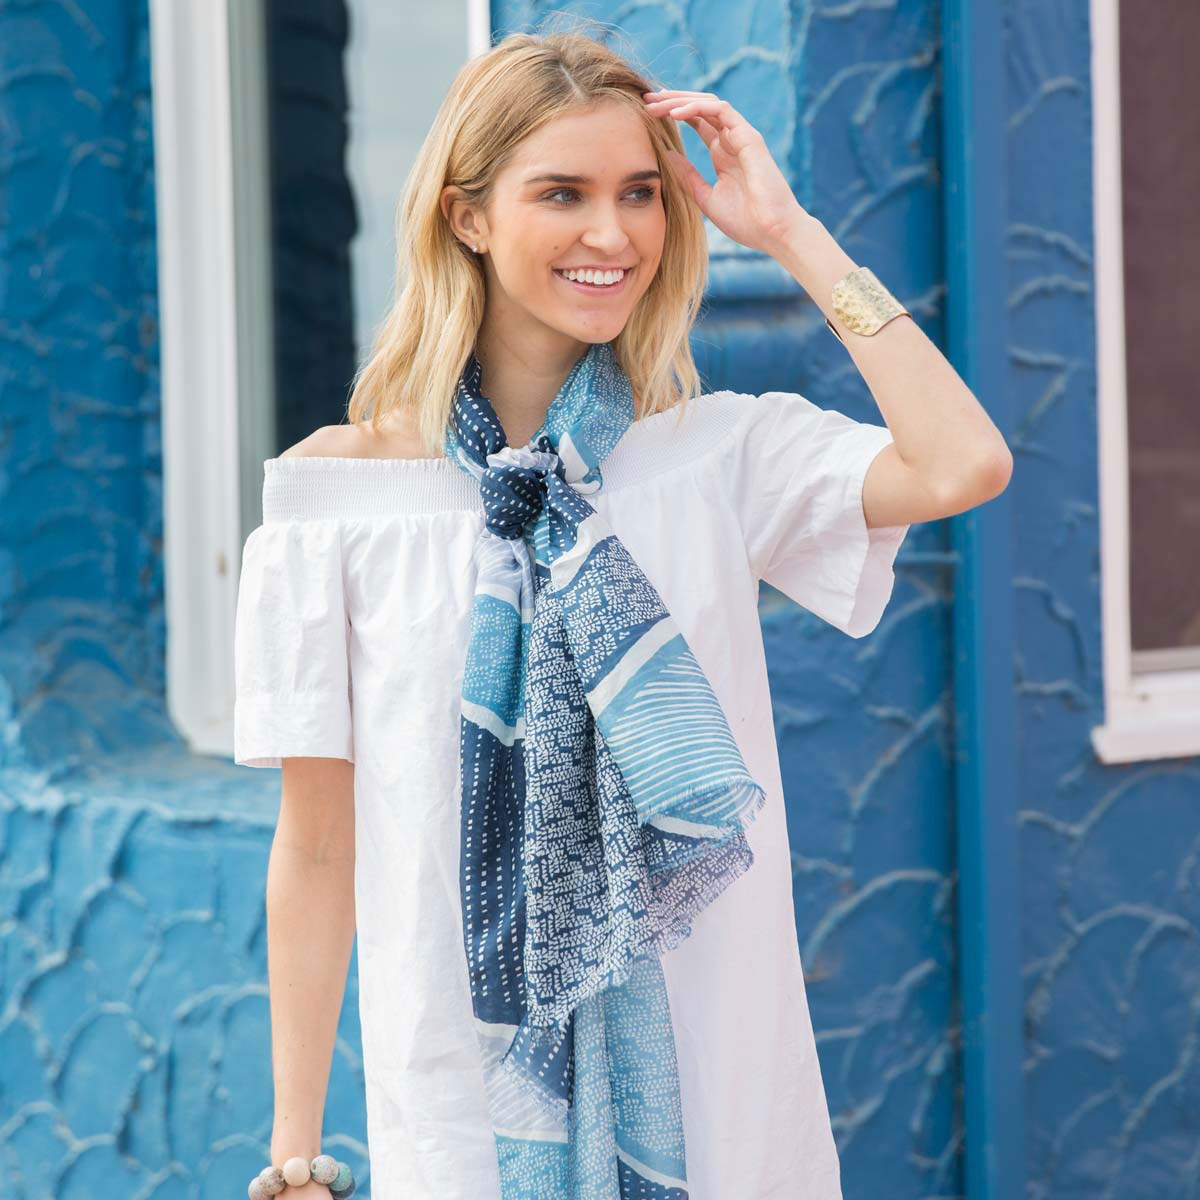 Gorgeous silk scarf in blue and white abstract patterns inspired by the ocean